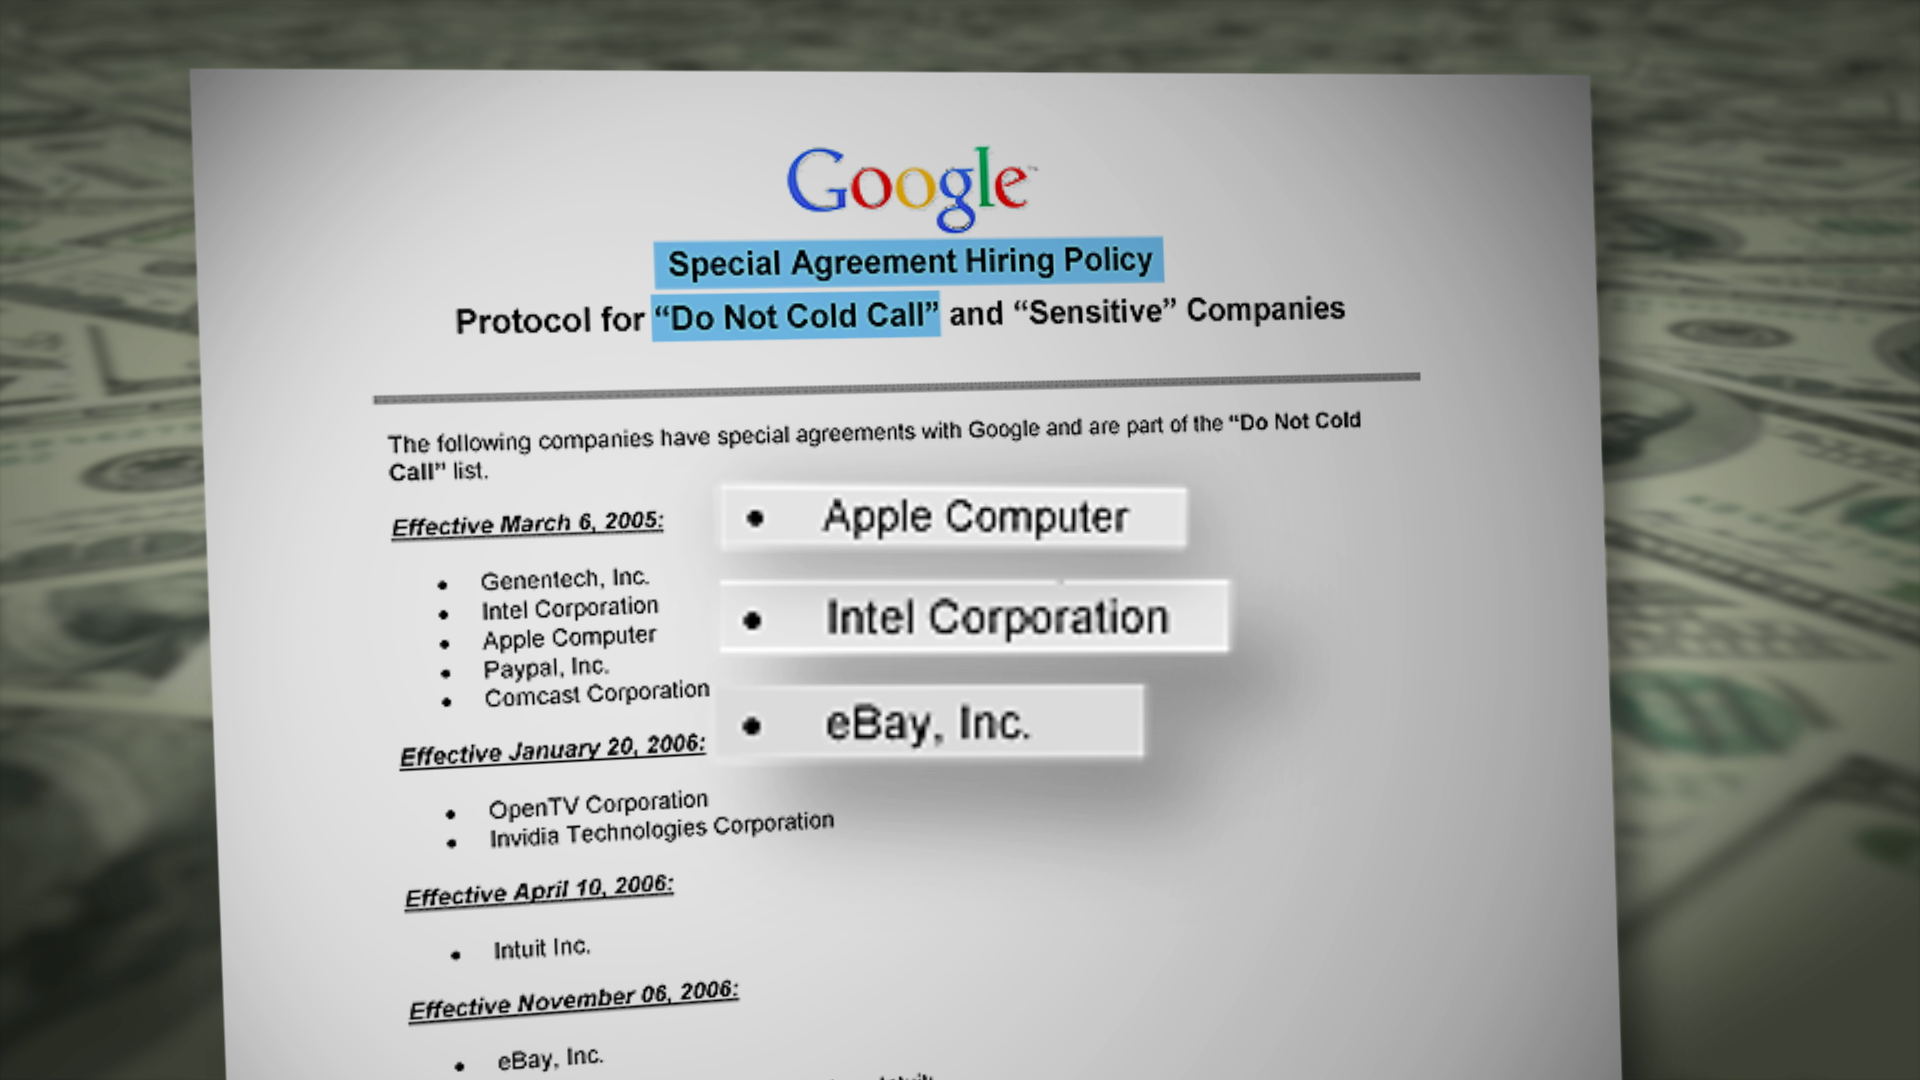 Google document revealing their Do Not Cold Call practices